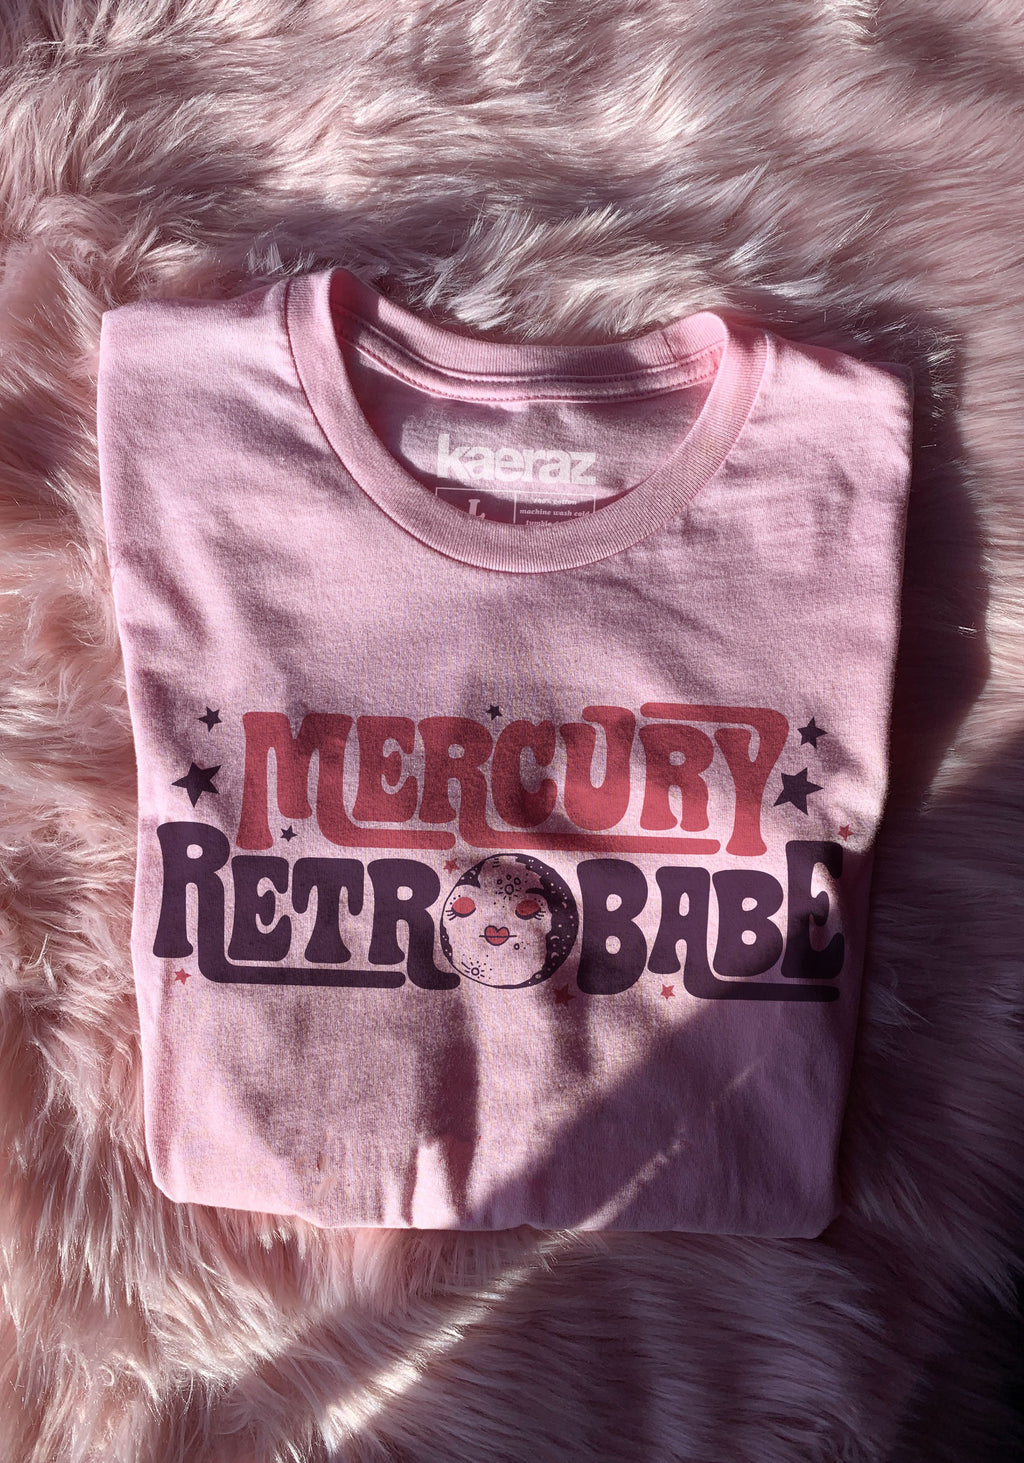 Mercury Retrobabe Tee / vintage style 70s 60s t shirt / mercury retrograde shirt / witchy clothing / astrology tshirt